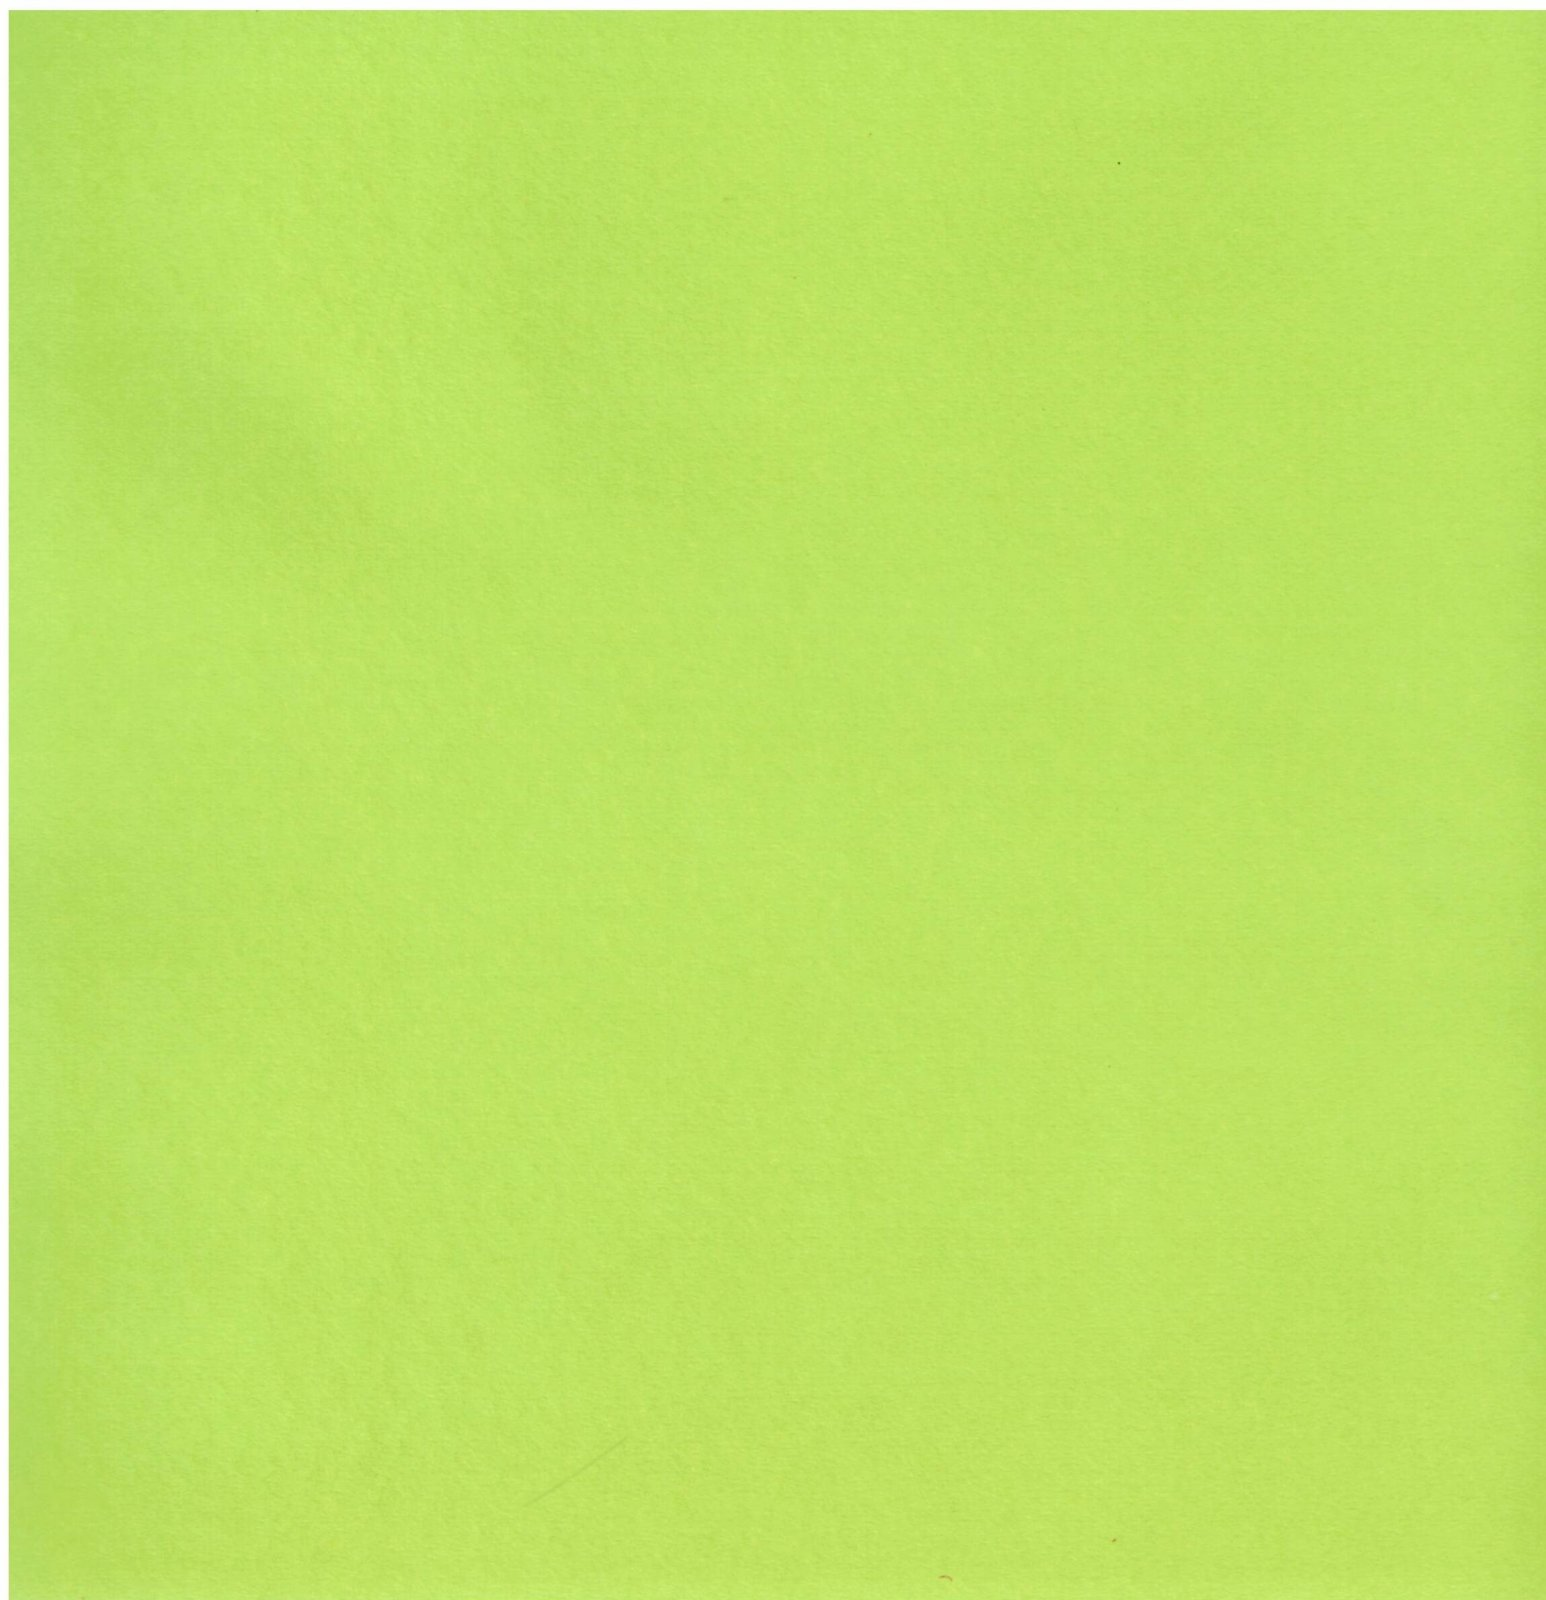 AC Cardstock 12X12 doux/lisse Lime 80lbs - Smooth Cardstock, Key Lime Item # 71779